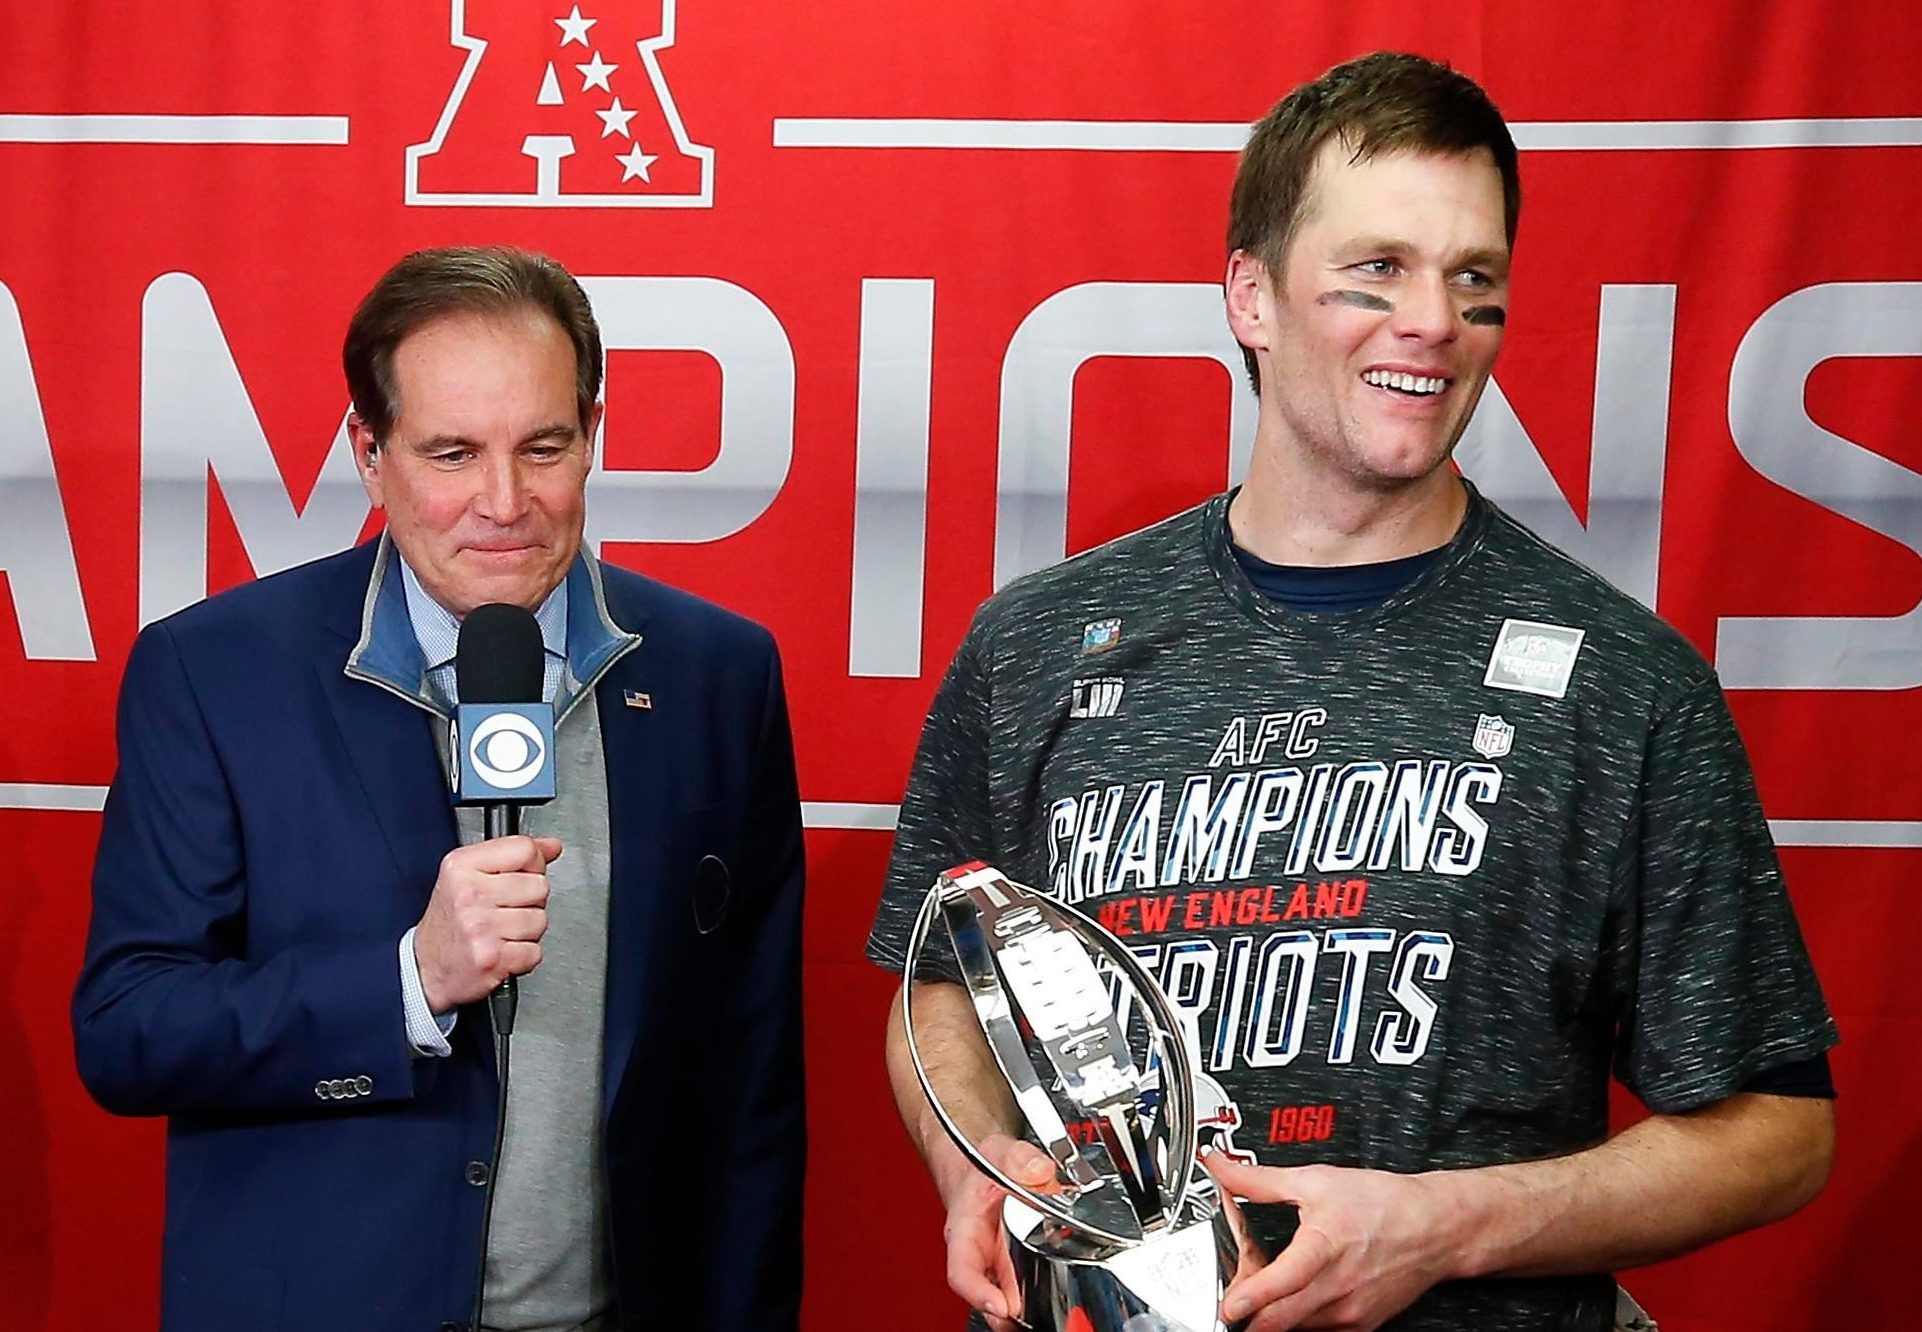 Tom Brady accidentally swore on live television after leading New England Patriots to the Super Bowl